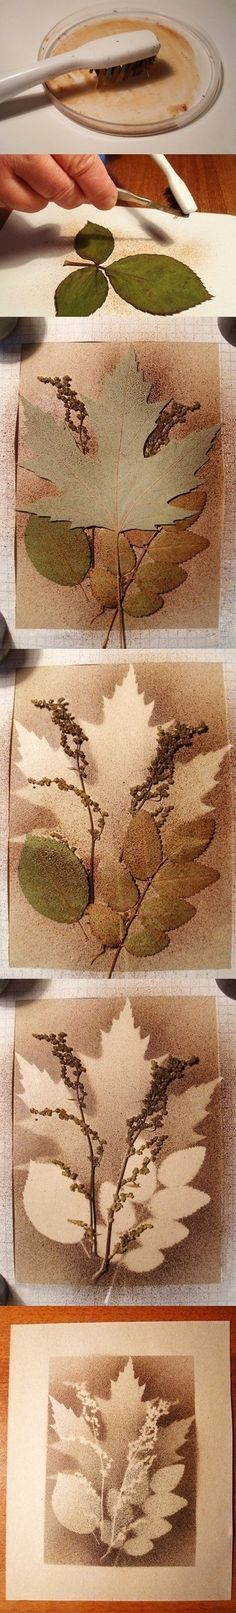 Spritzing over leaf arrangement.  If no mat will be used, use something to mask the edges. This is beautiful